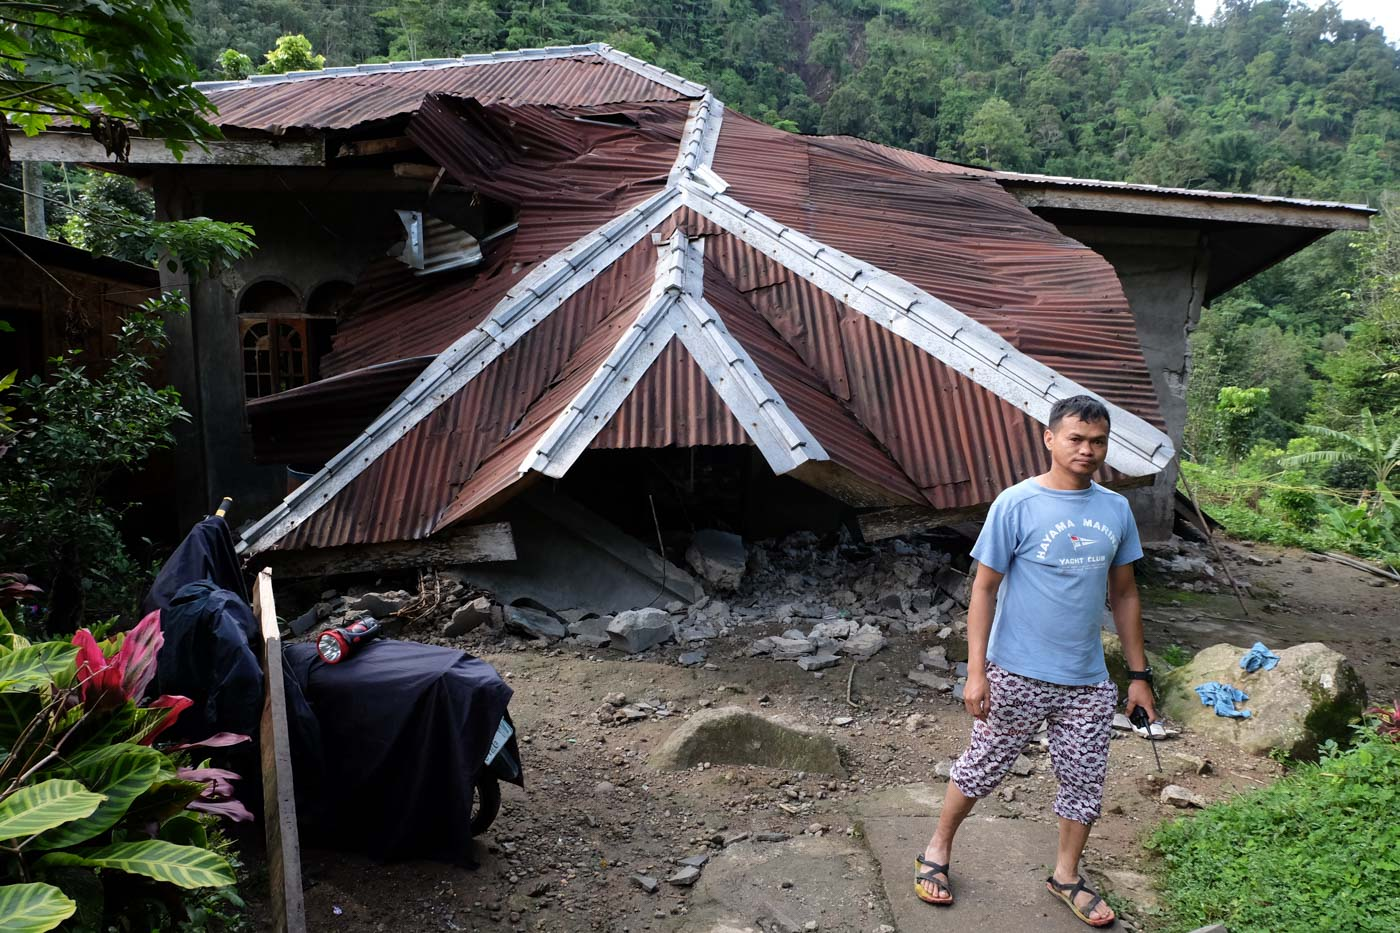 COLLAPSED HOUSE. One of the damaged houses in Barangay Ilomavis, Cotabato. Photo by Bobby Lagsa/Rappler